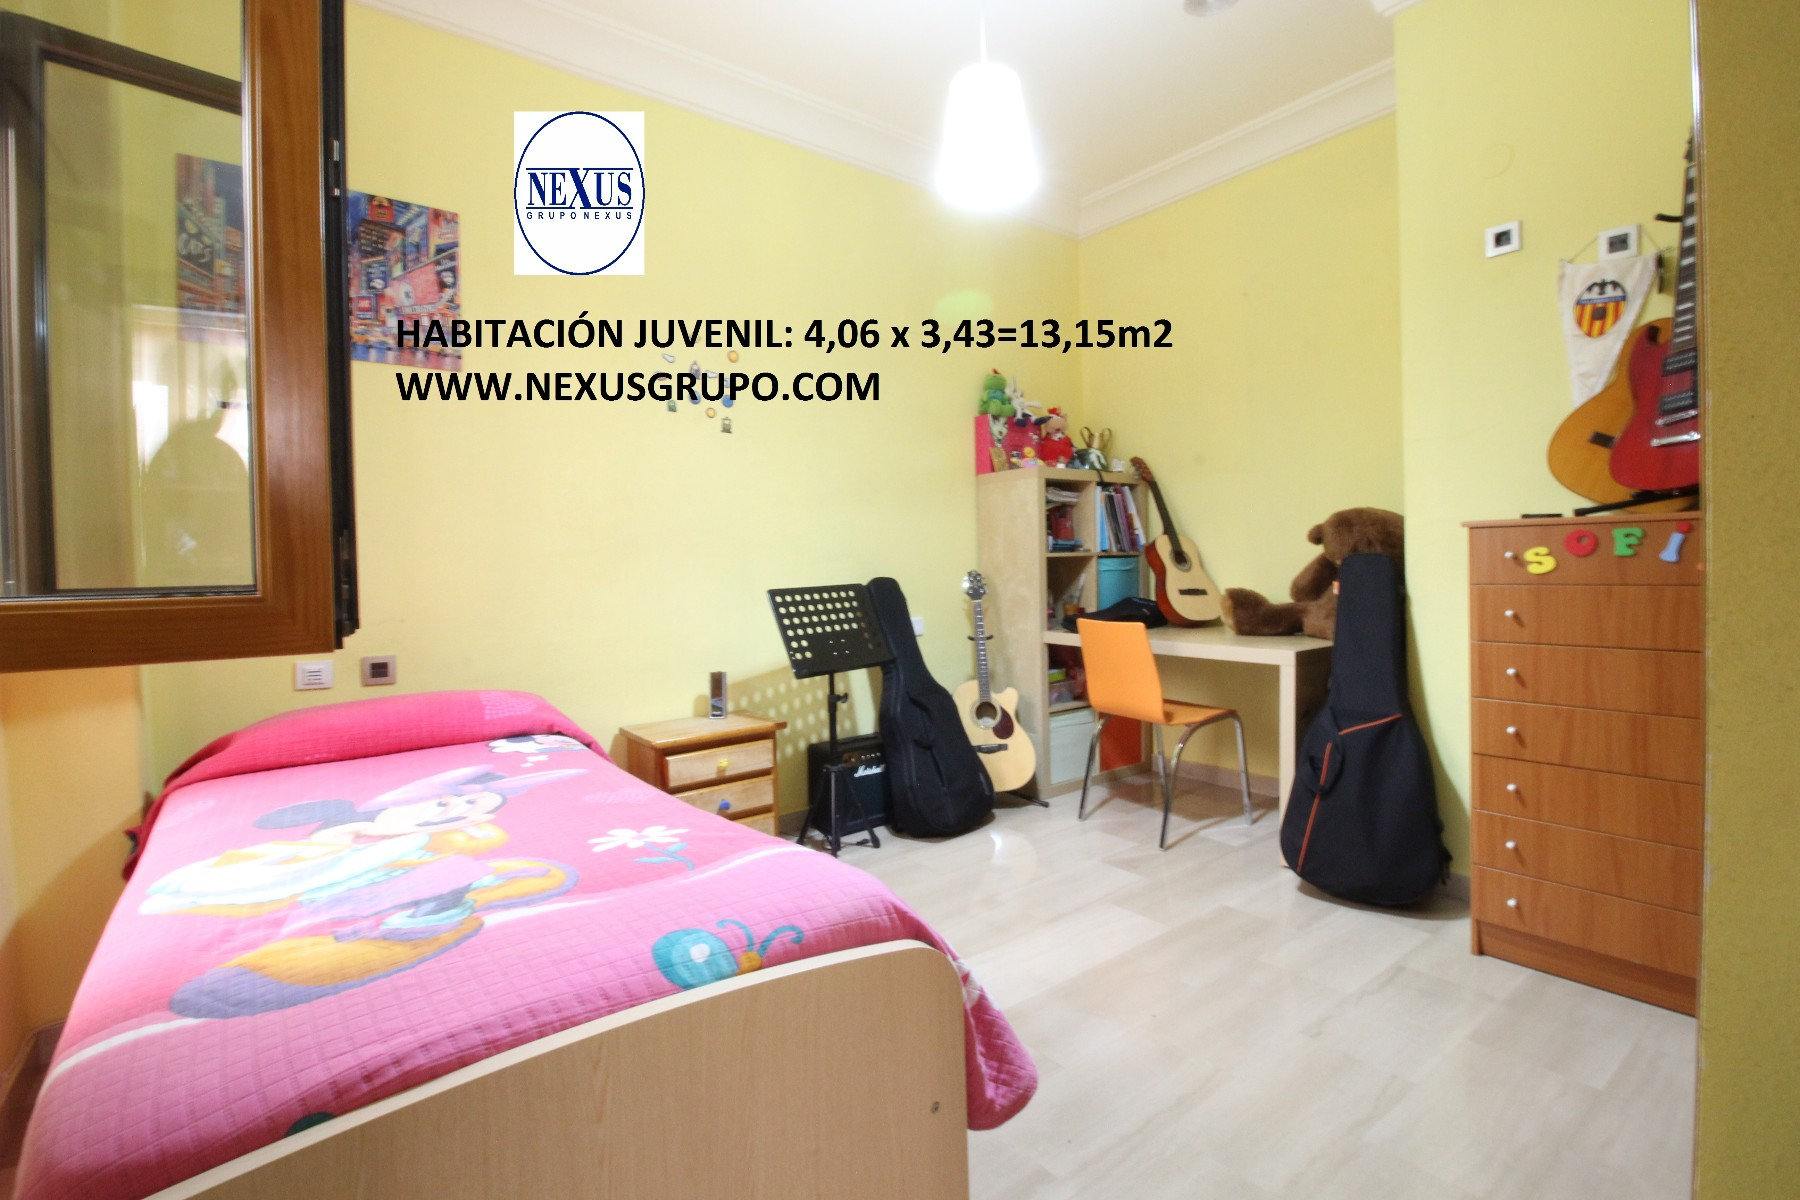 GRUPO NEXUS ESTATE AGENCY SELLS EXCELLENT AN APARTMENT IN GROUND FLOOR in Nexus Grupo